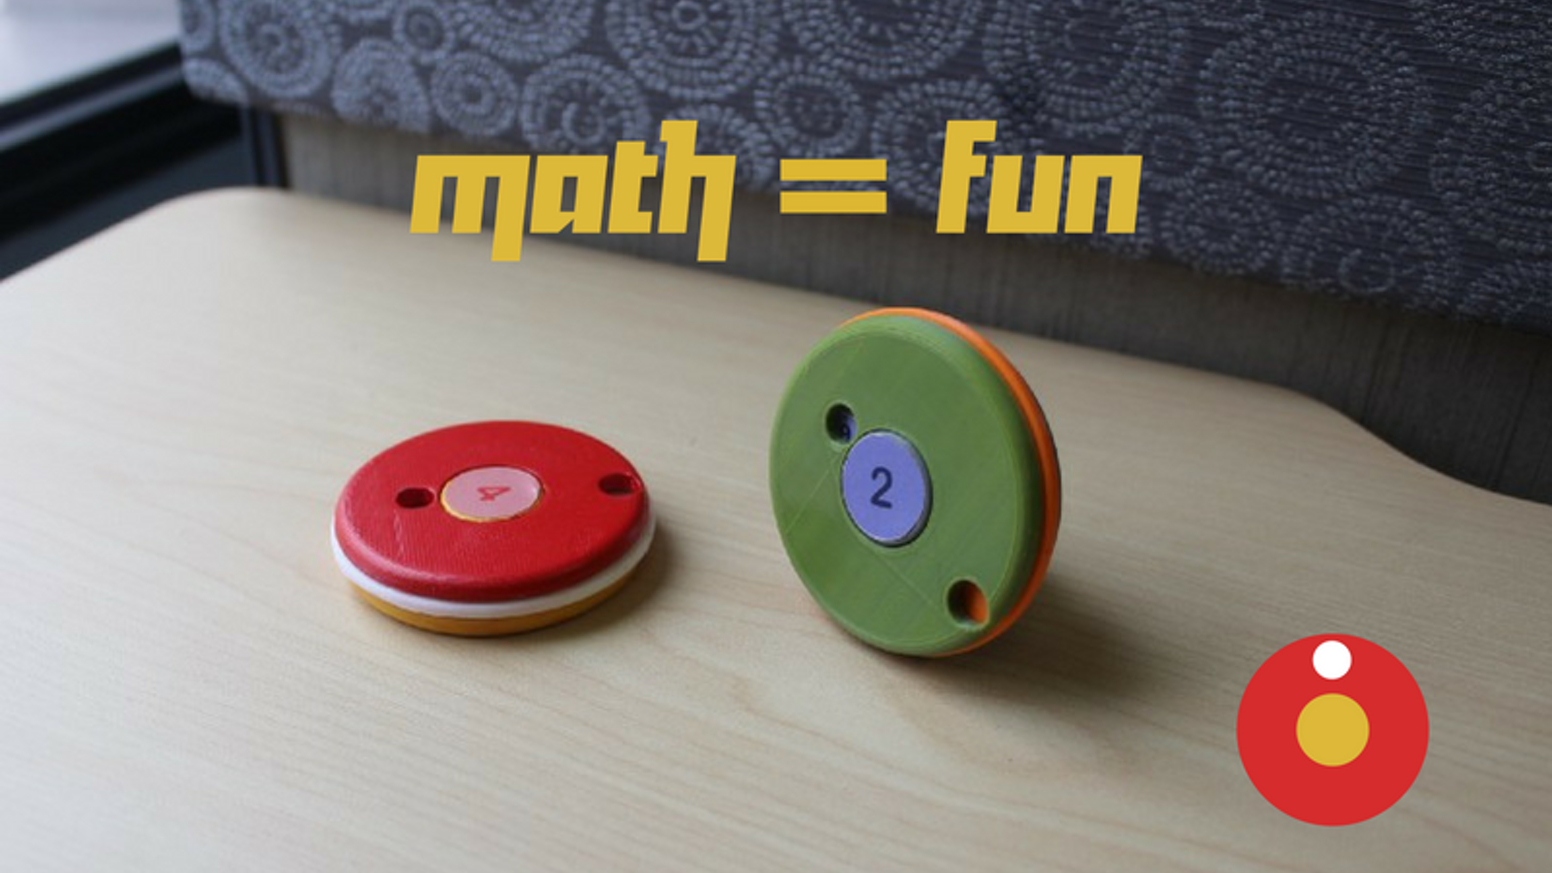 Learning multiplication and division can be quite difficult for kids, wonda makes it as easy as spinning circles.